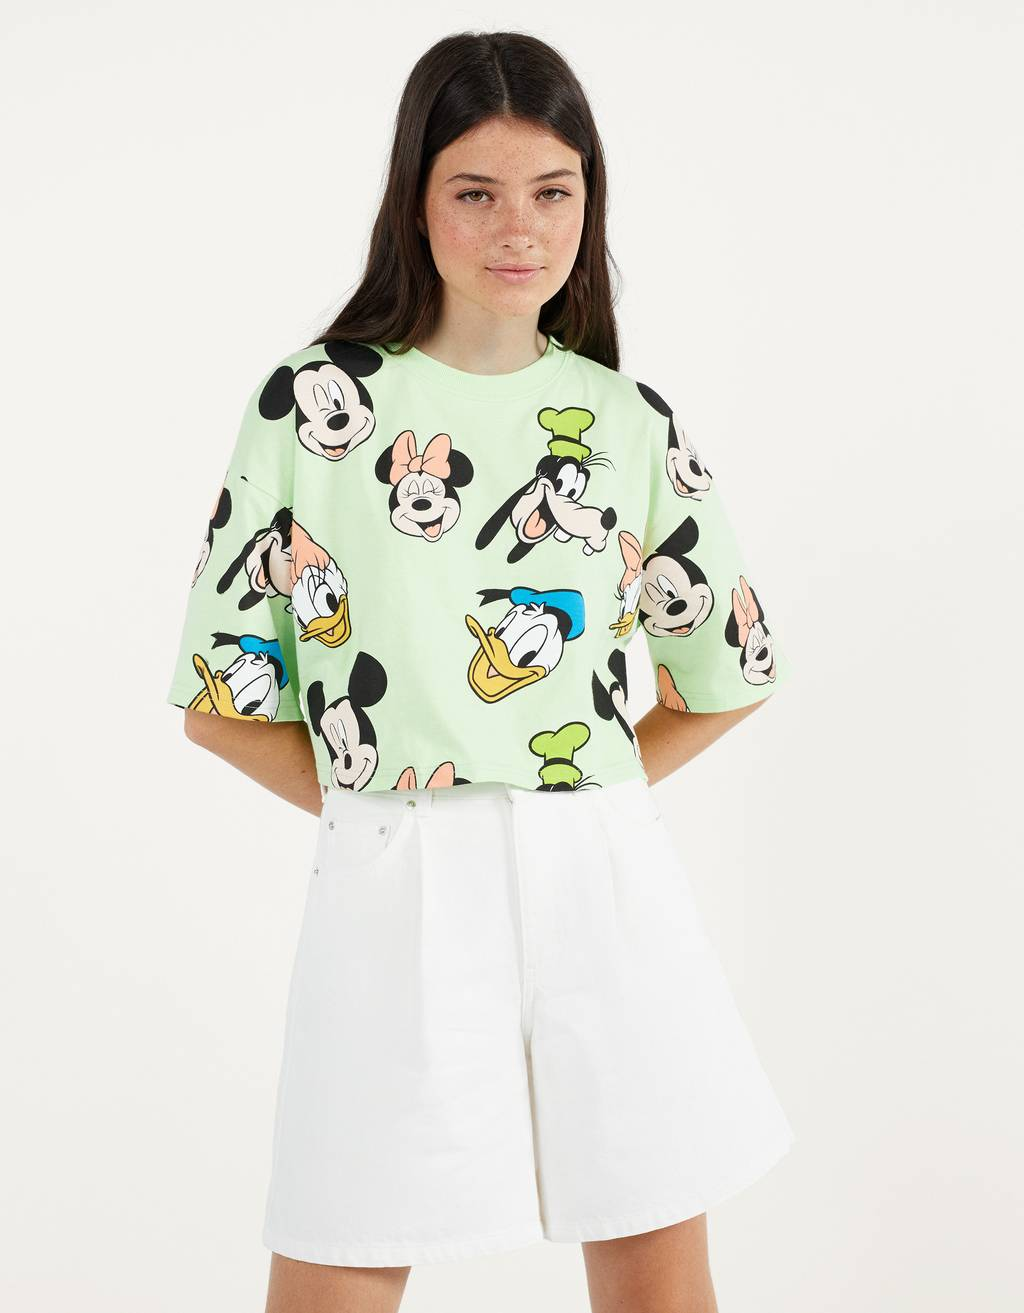 Cropped Disney t-shirt